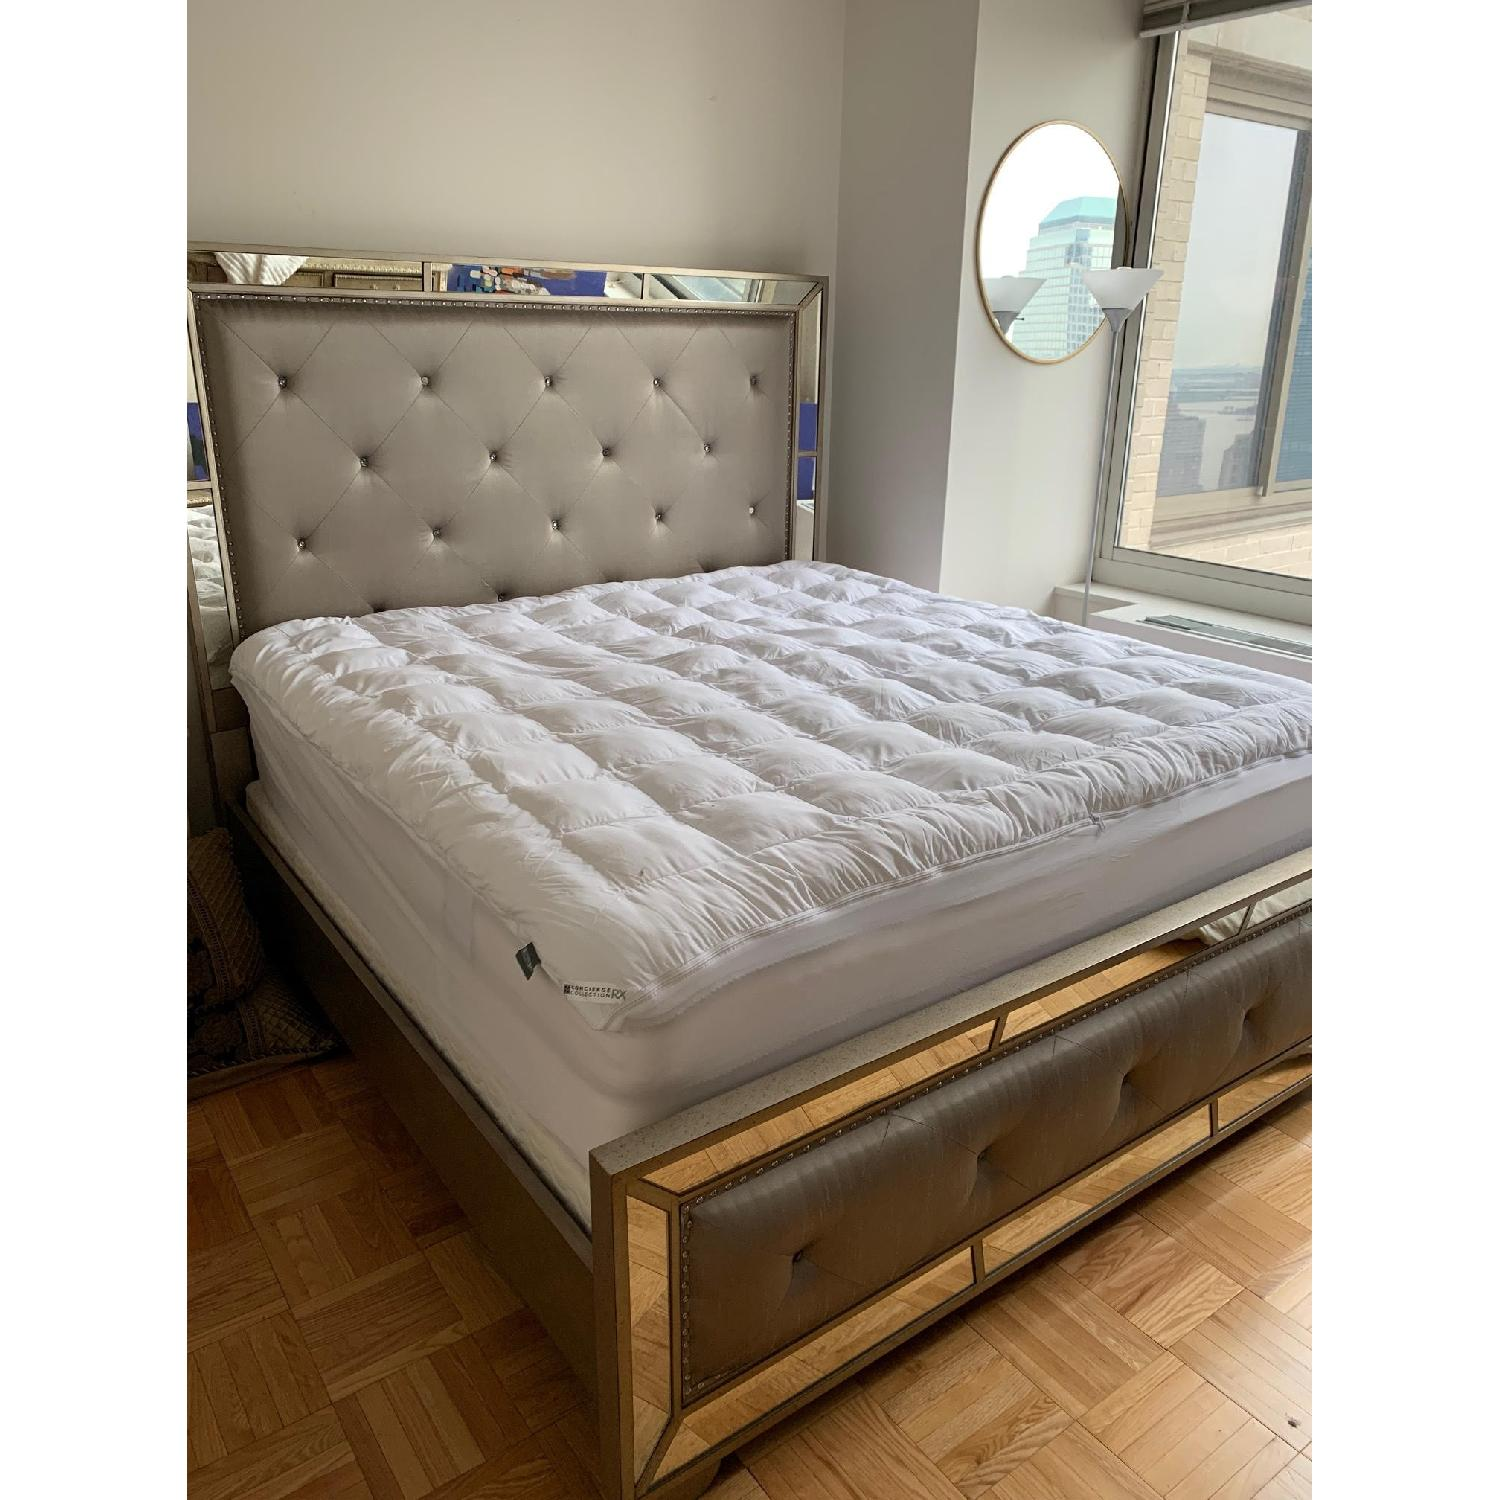 Neiman Marcus Horchow Lombard King Bed - image-1